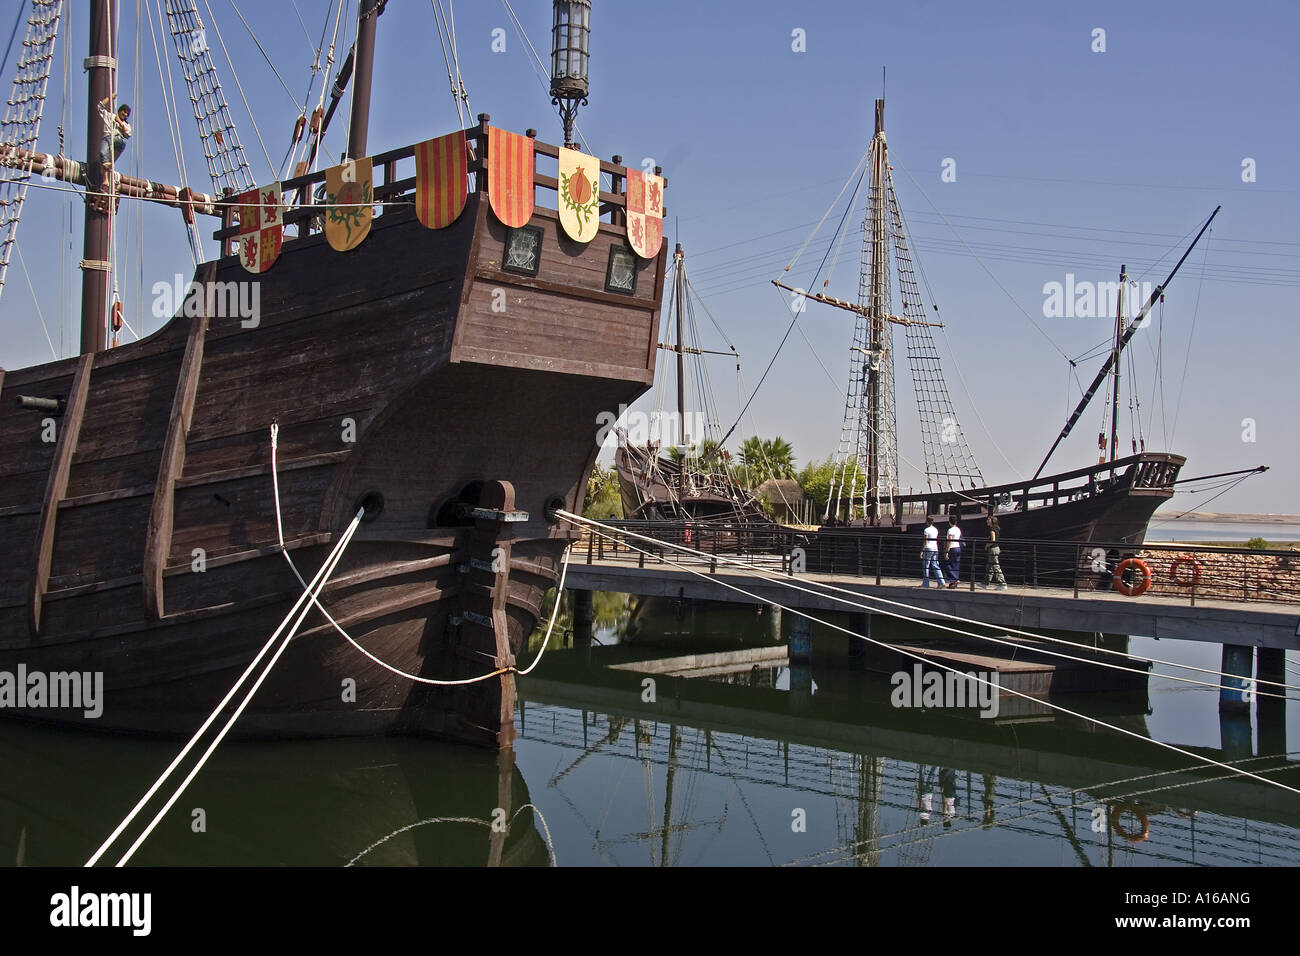 Replicas of Santa Maria Pinta and Niña the three ships used by Christopher Columbus in his first voyage across the Stock Photo